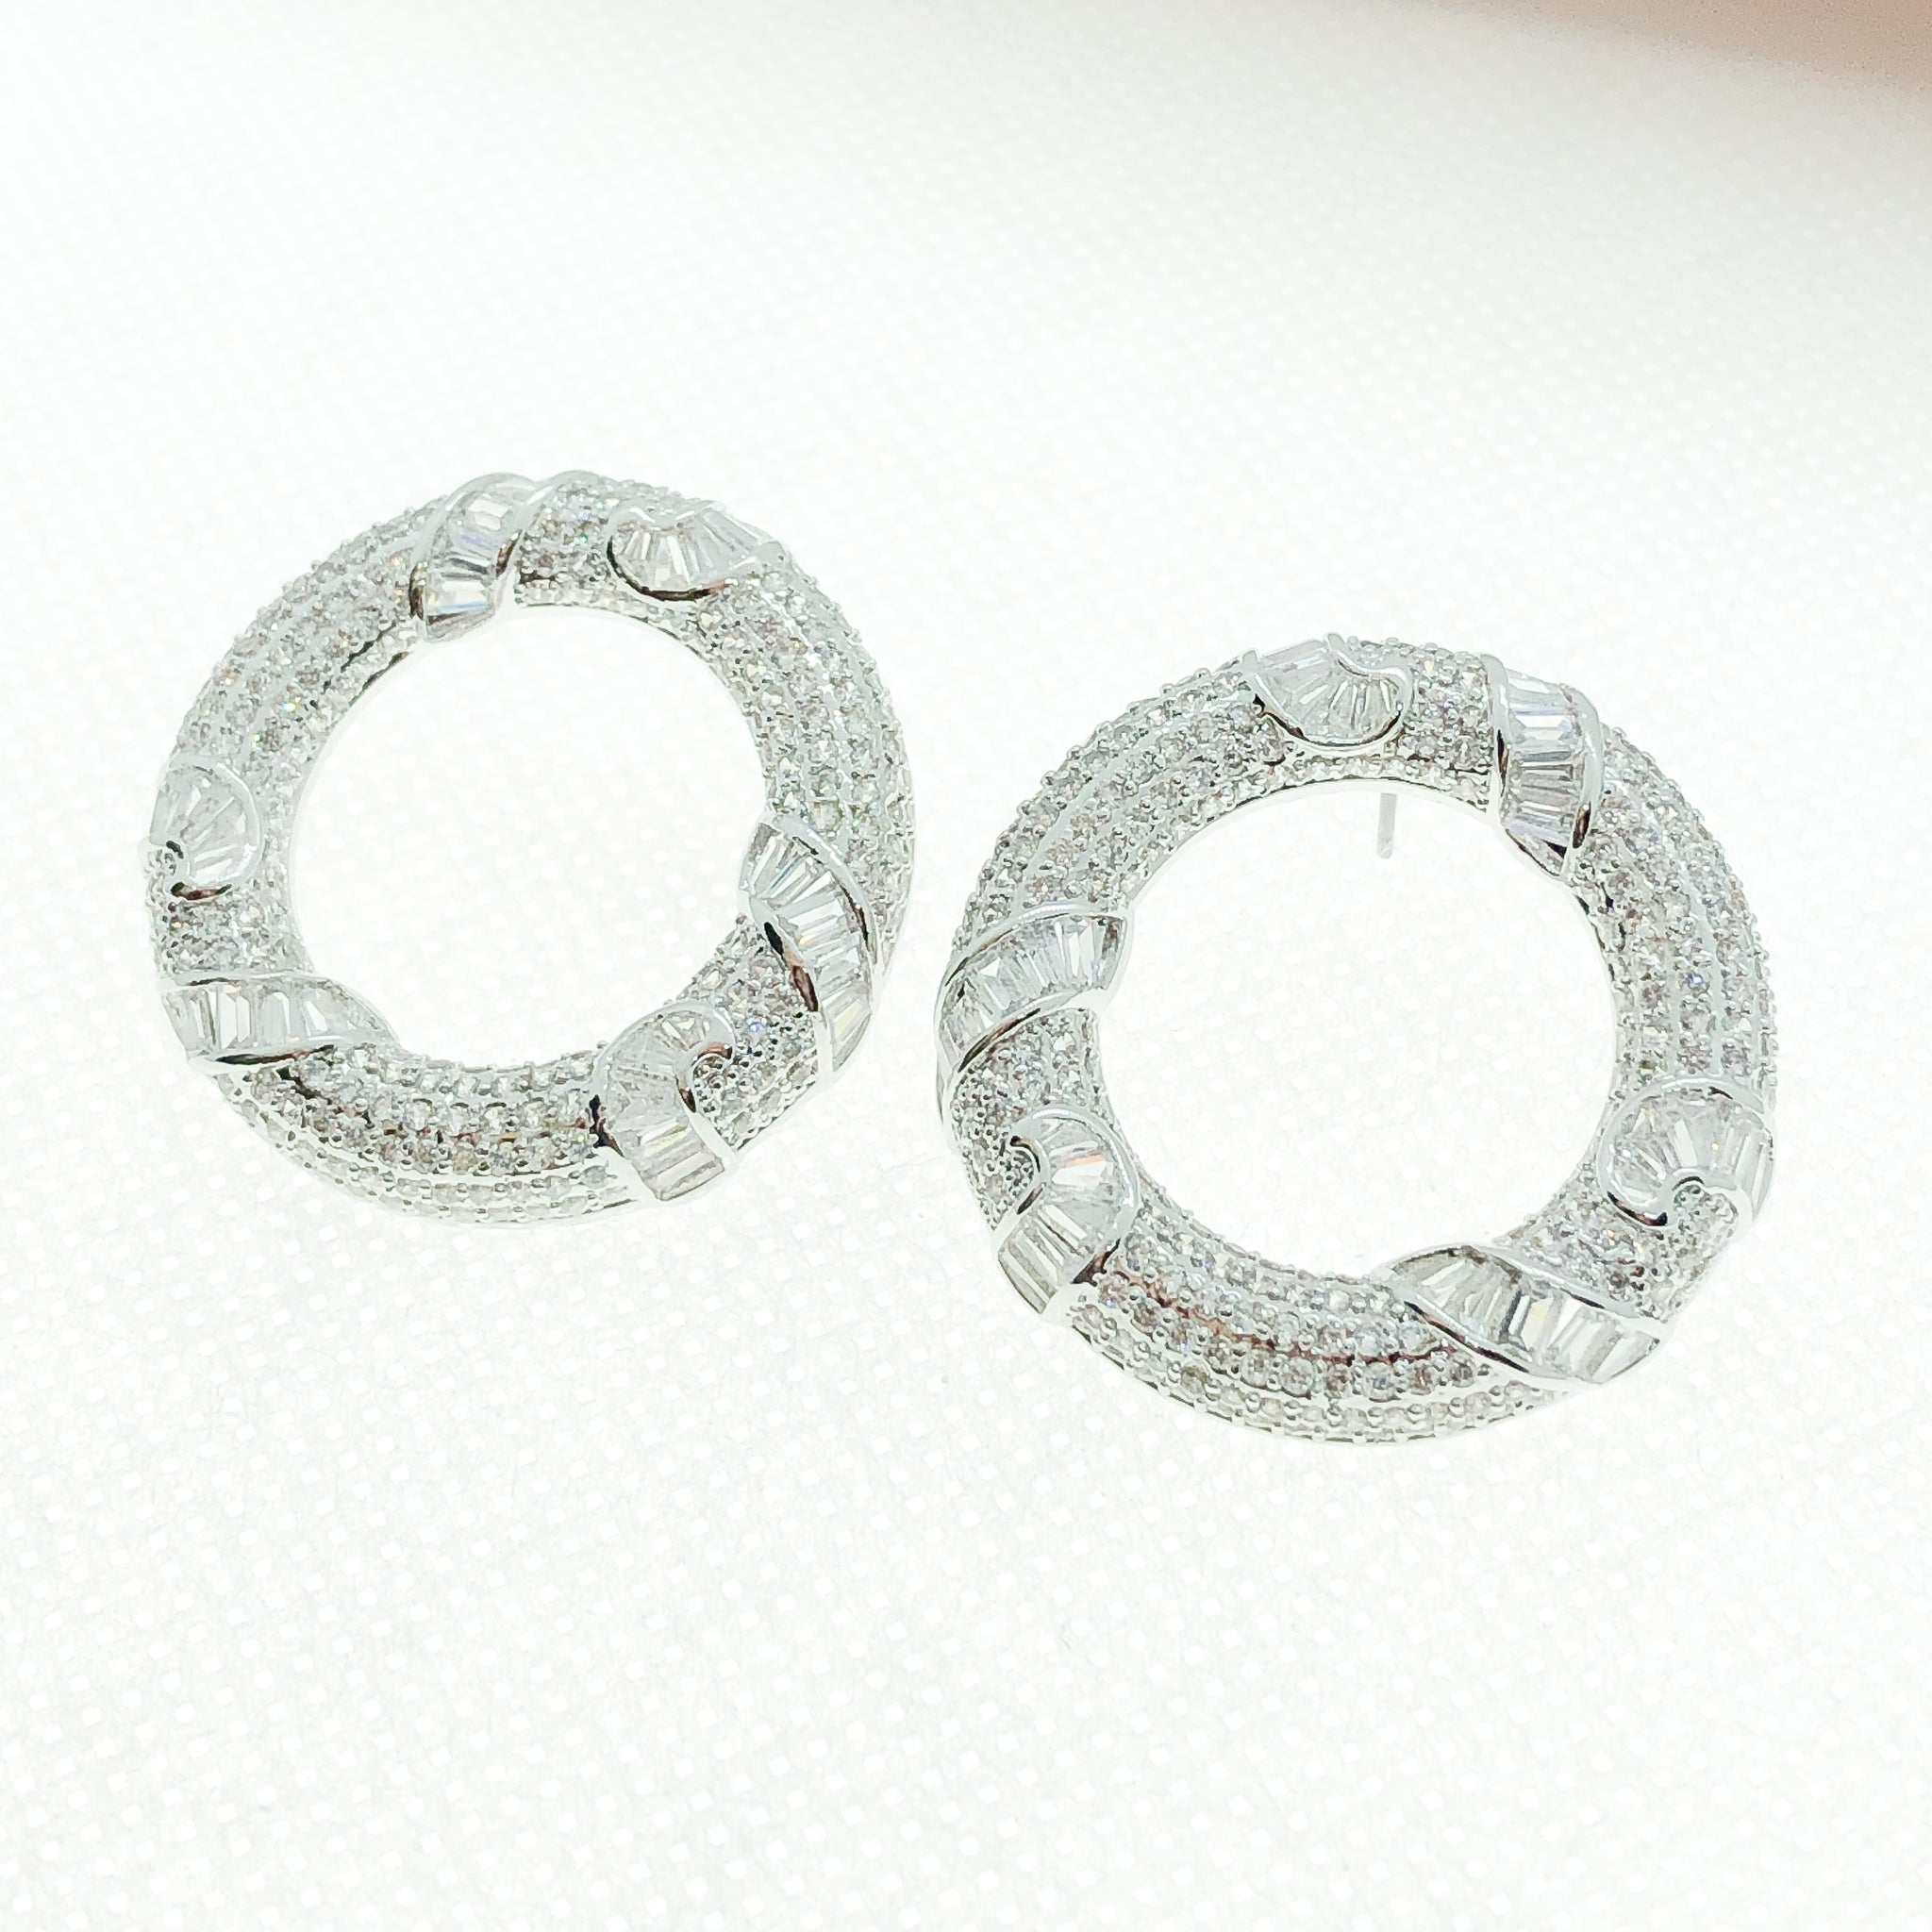 ID: E4753 WOMEN JEWELRY 18K WHITE GOLD GF CLEAR ROUND STONES EARRINGS FASHION LADY WEDDING ENGAGEMENT UNIQUE LUXURY STUD